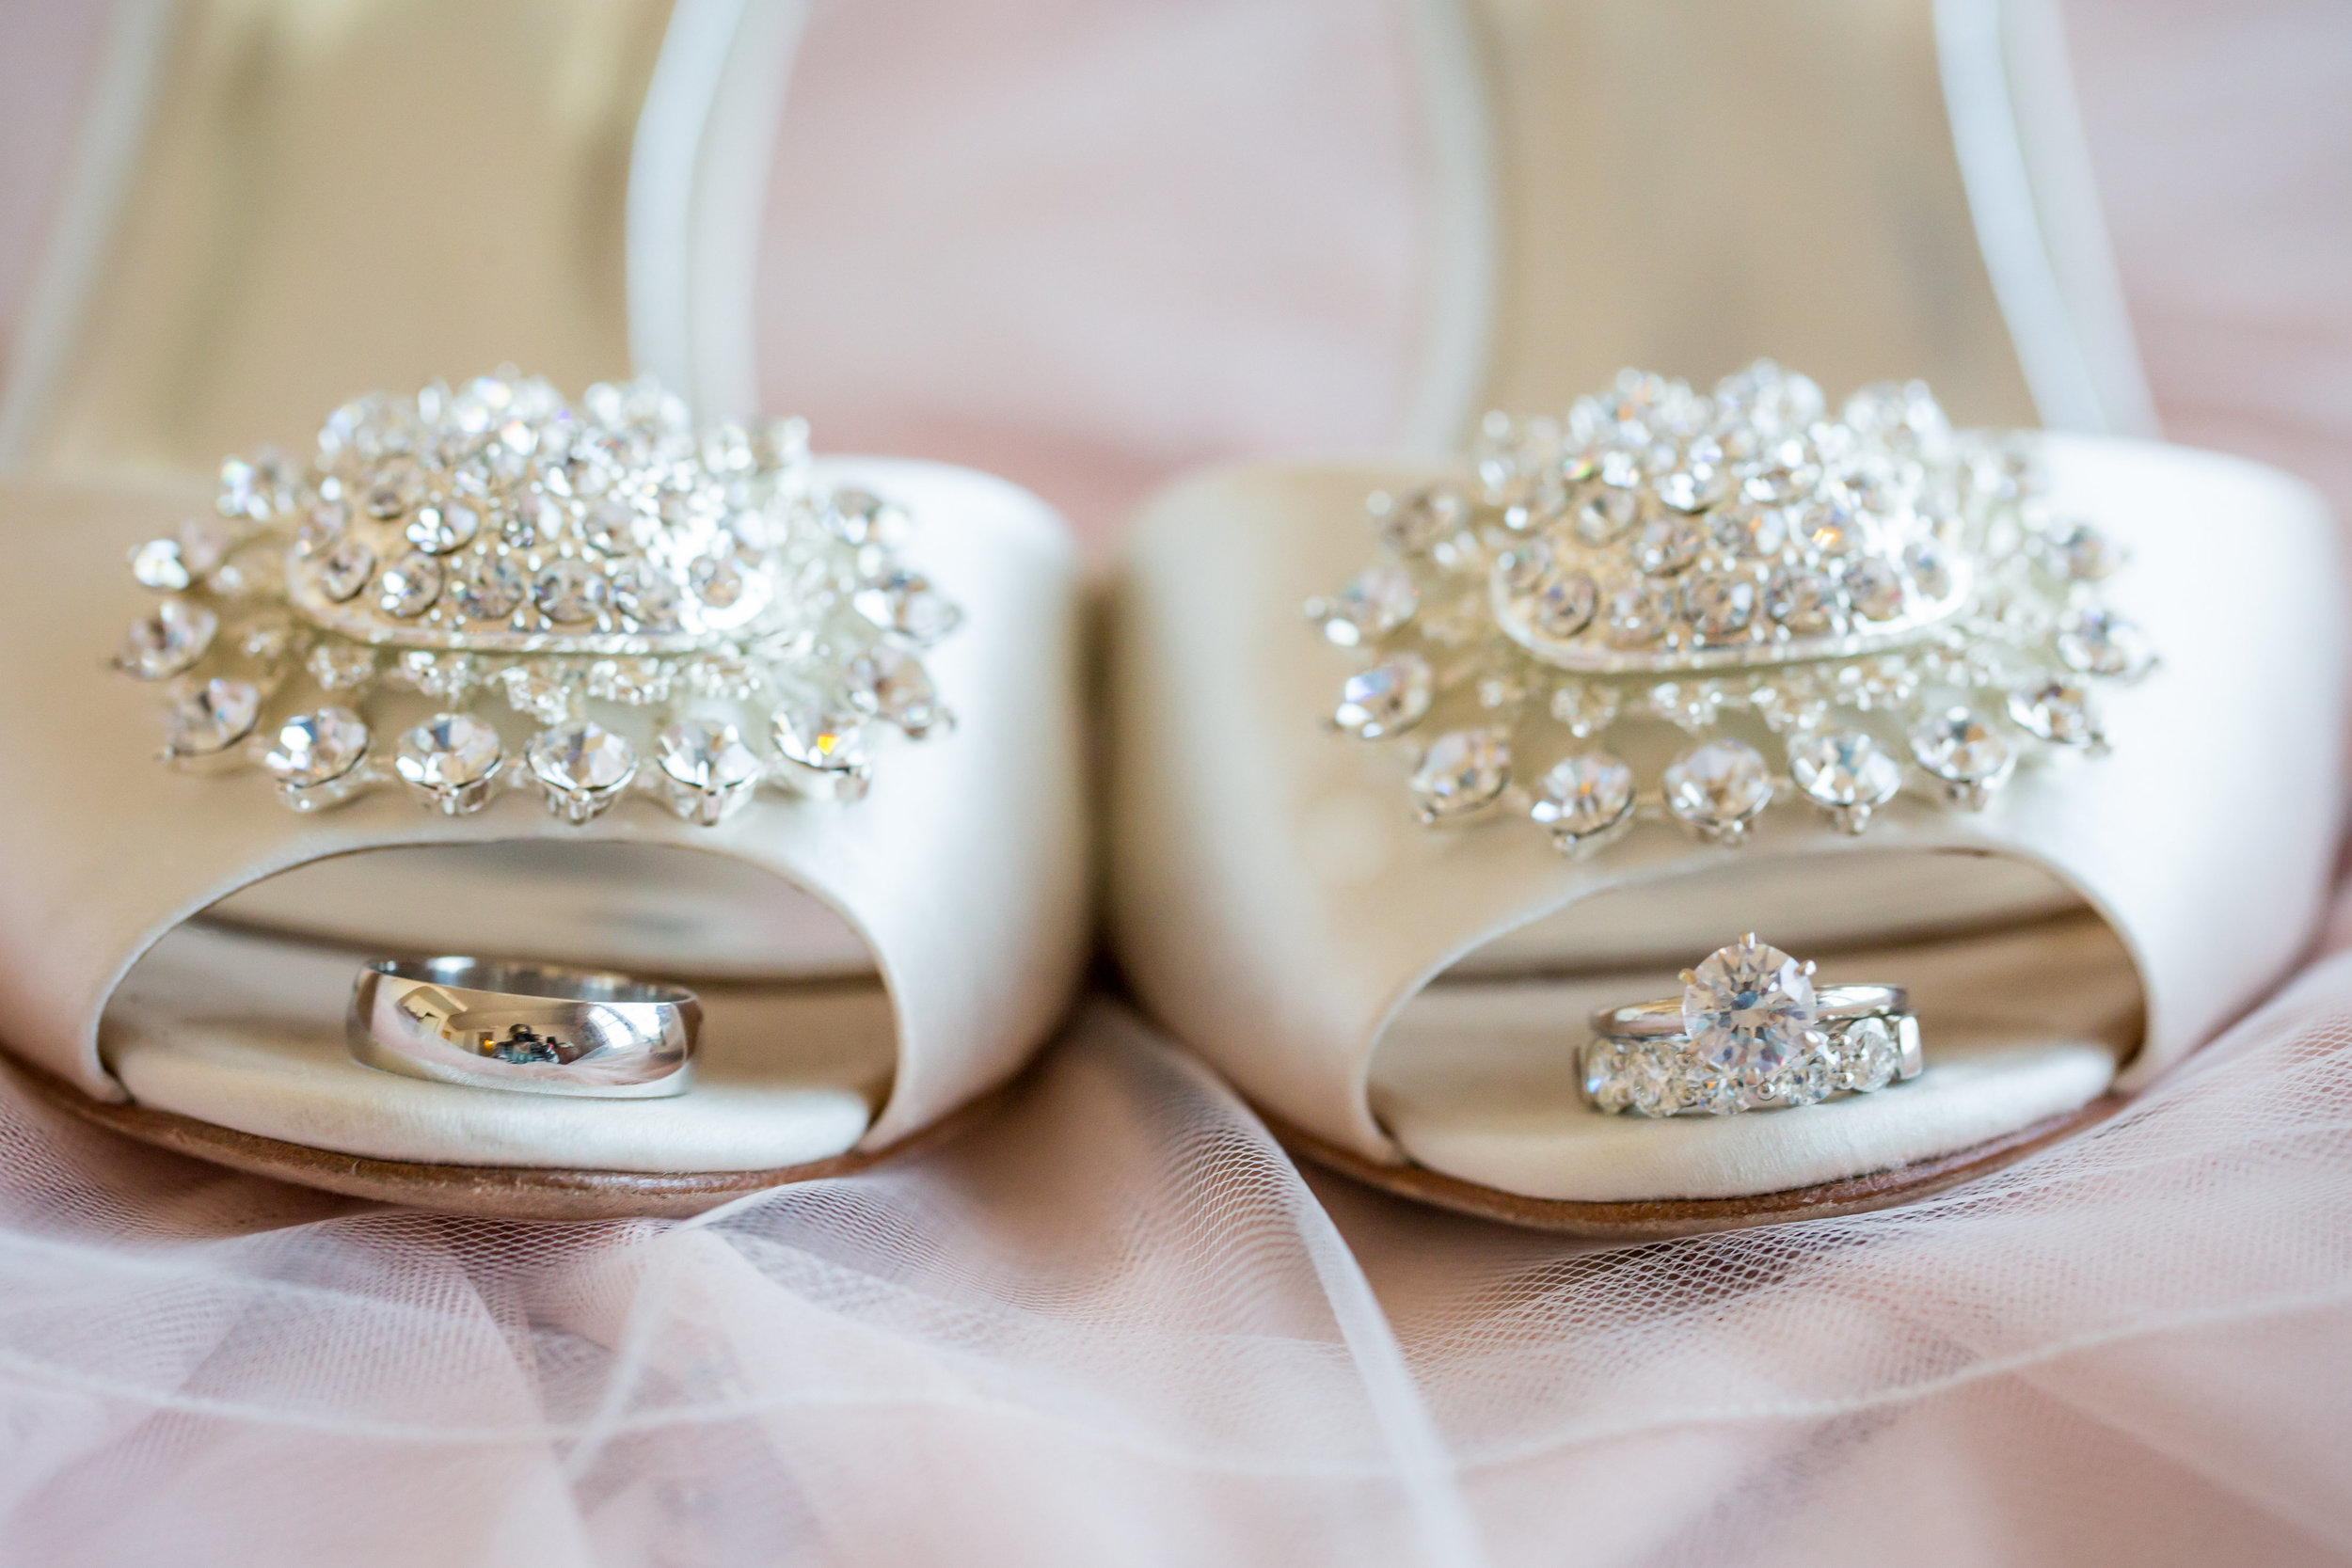 white badgley mischka wedding heels - A Diamond Hotel Penthouse Wedding by Katelyn Owens Photography